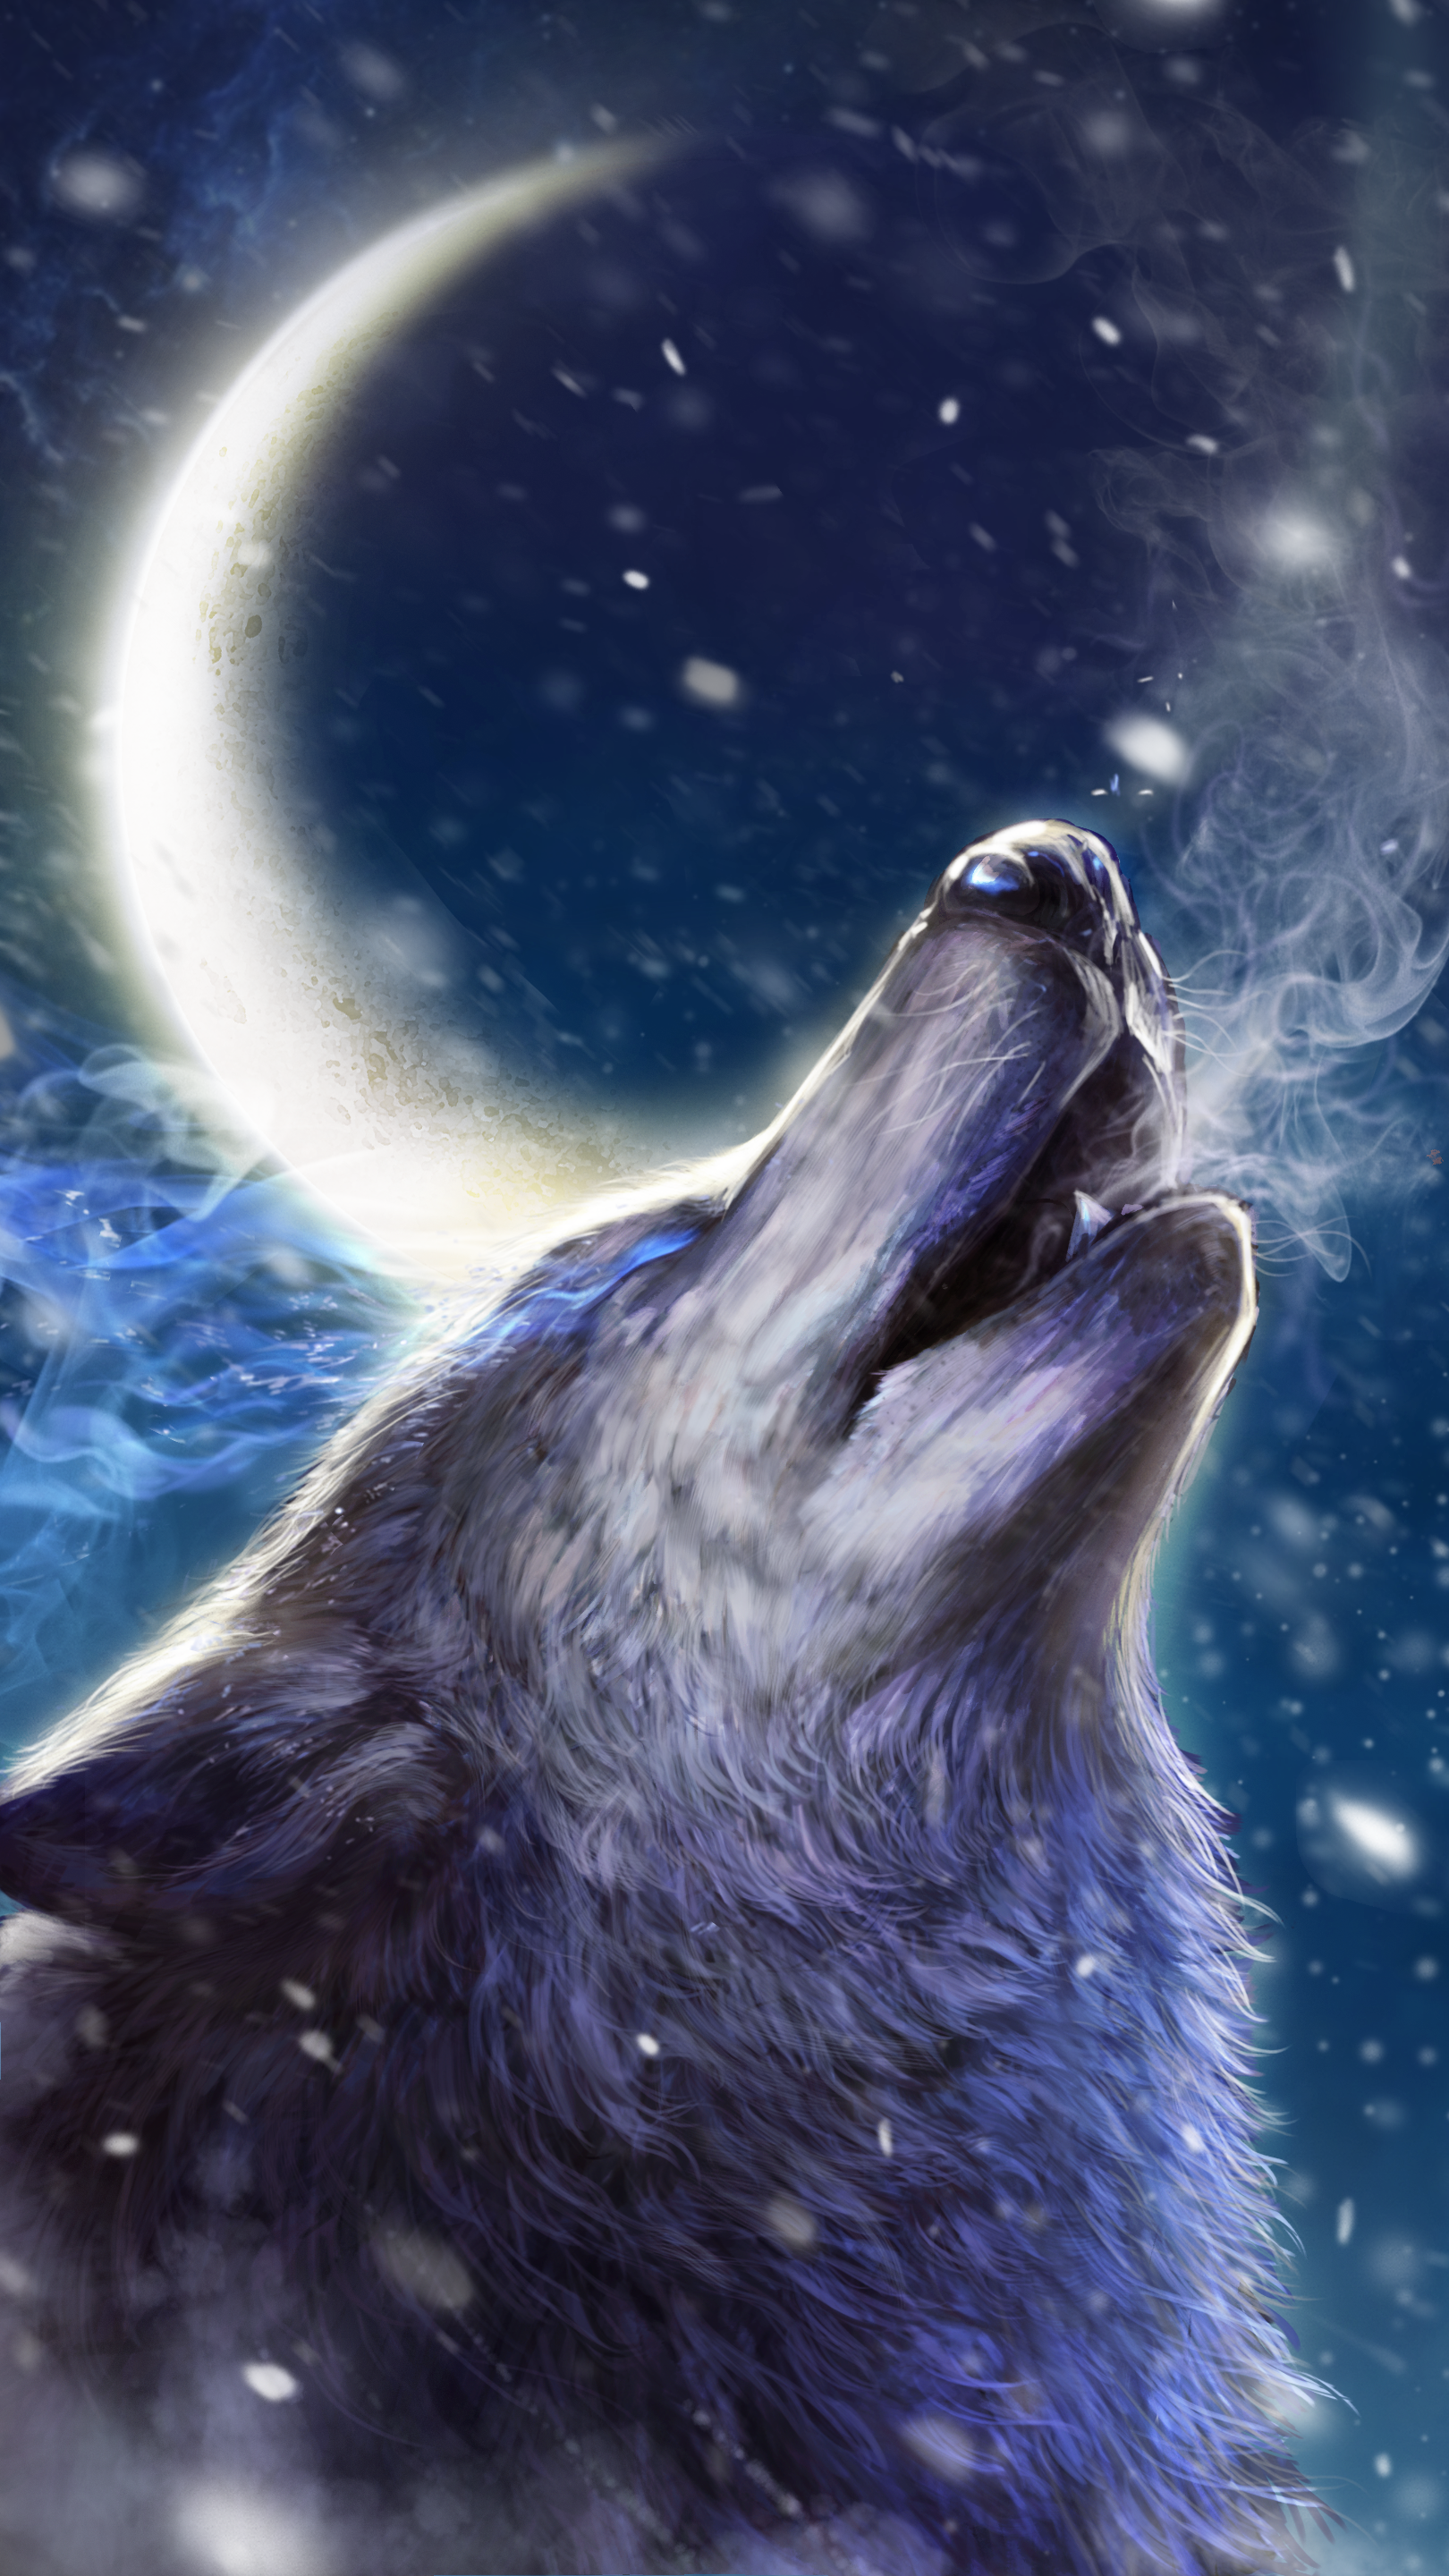 howling wolf live wallpaper android live wallpapers from ahatheme